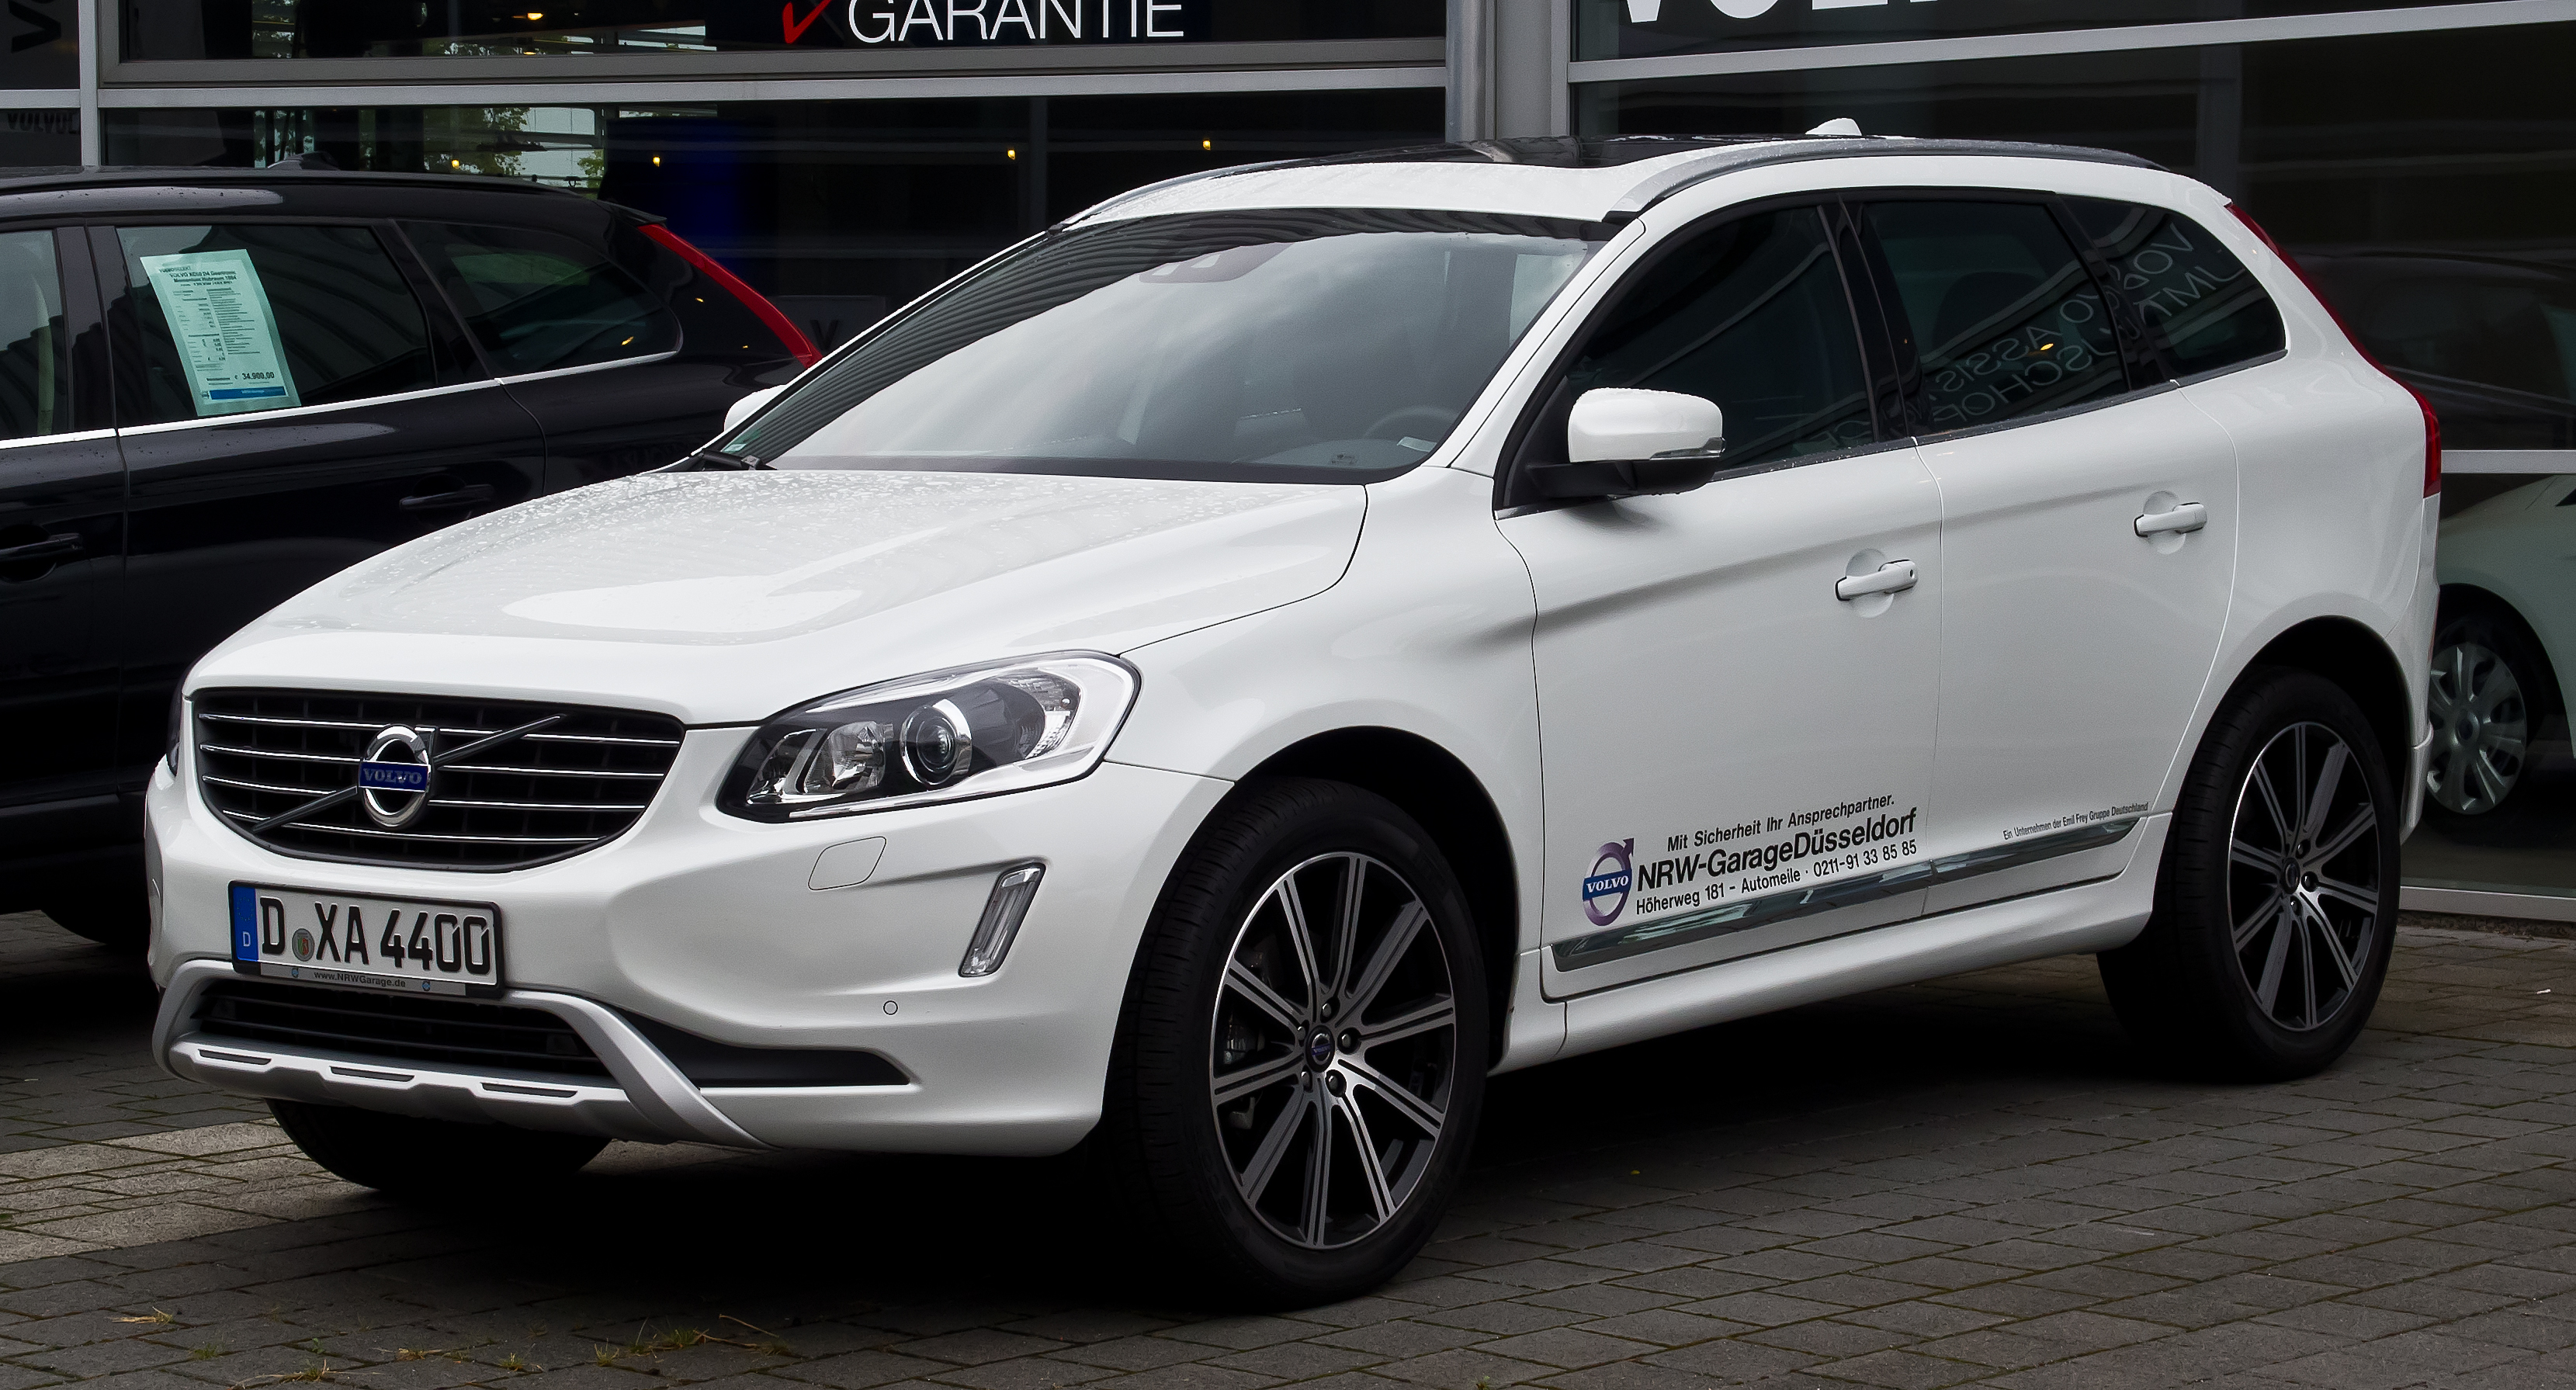 124208 2015 5 Volvo Xc 60 T6 Awd Windy City Review in addition 2005 Volvo Xc90 V8 besides Volvo Xc60 Interior Volvo Xc60 Interior in addition 2017 Volvo Xc90 T6 Momentum Suv further Jaguar F Pace Premium 2017 Vs Volvo Xc60 T6 R Design 2017. on xc60 t6 awd review